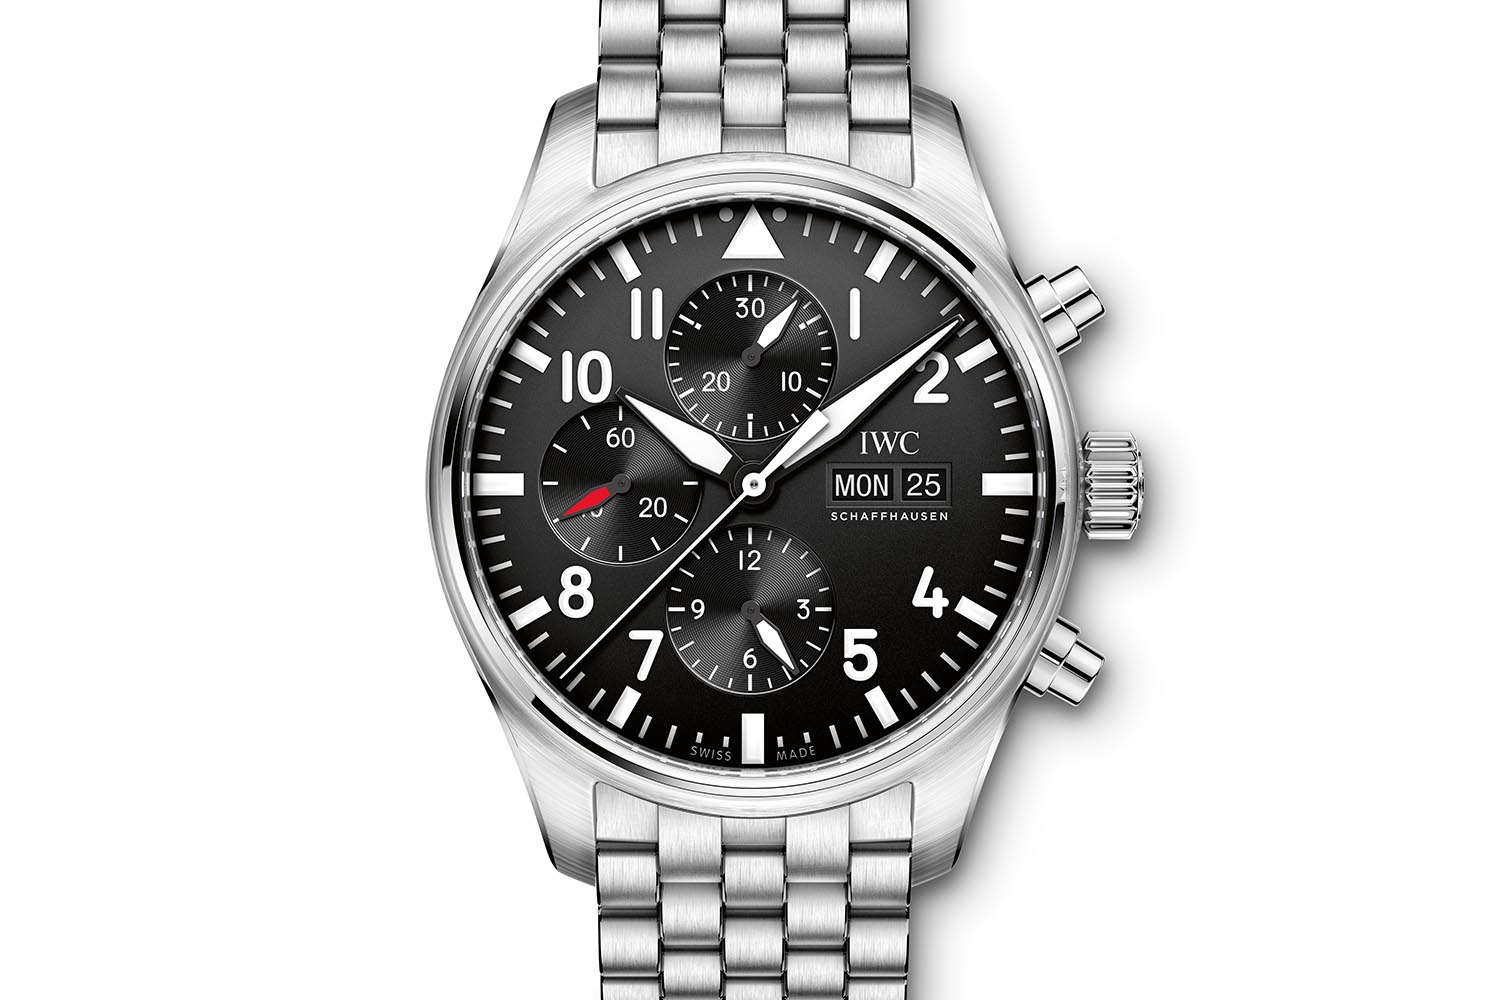 IWC Pilot's Watch Chronograph IW377710 - SIHH 2016